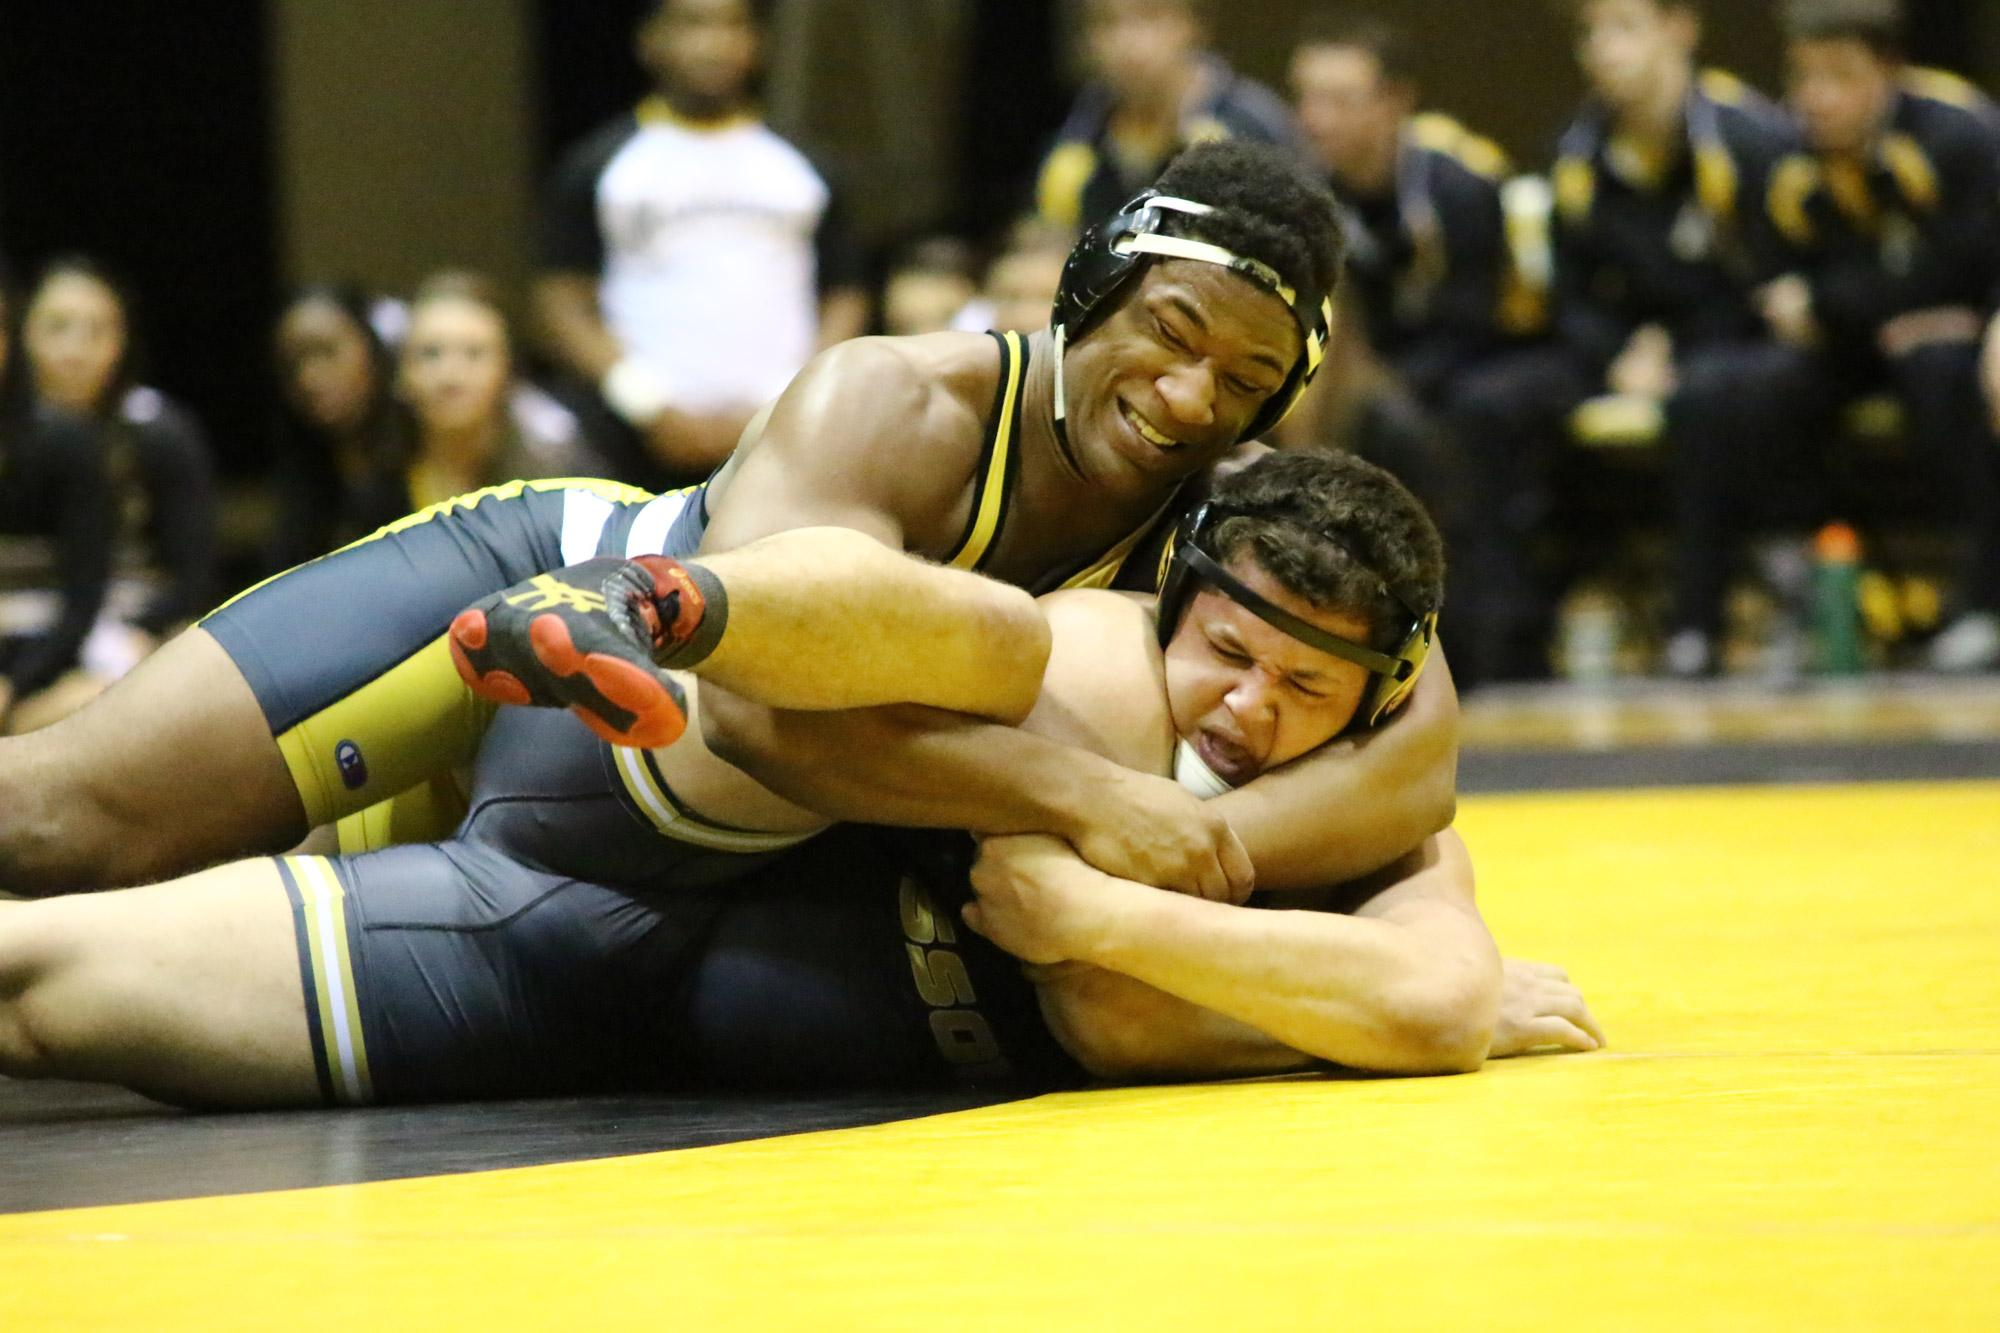 Denzel Dejournette attempts to pin his opponent during a wrestling match this season. Photo courtesy of Rob Moore.